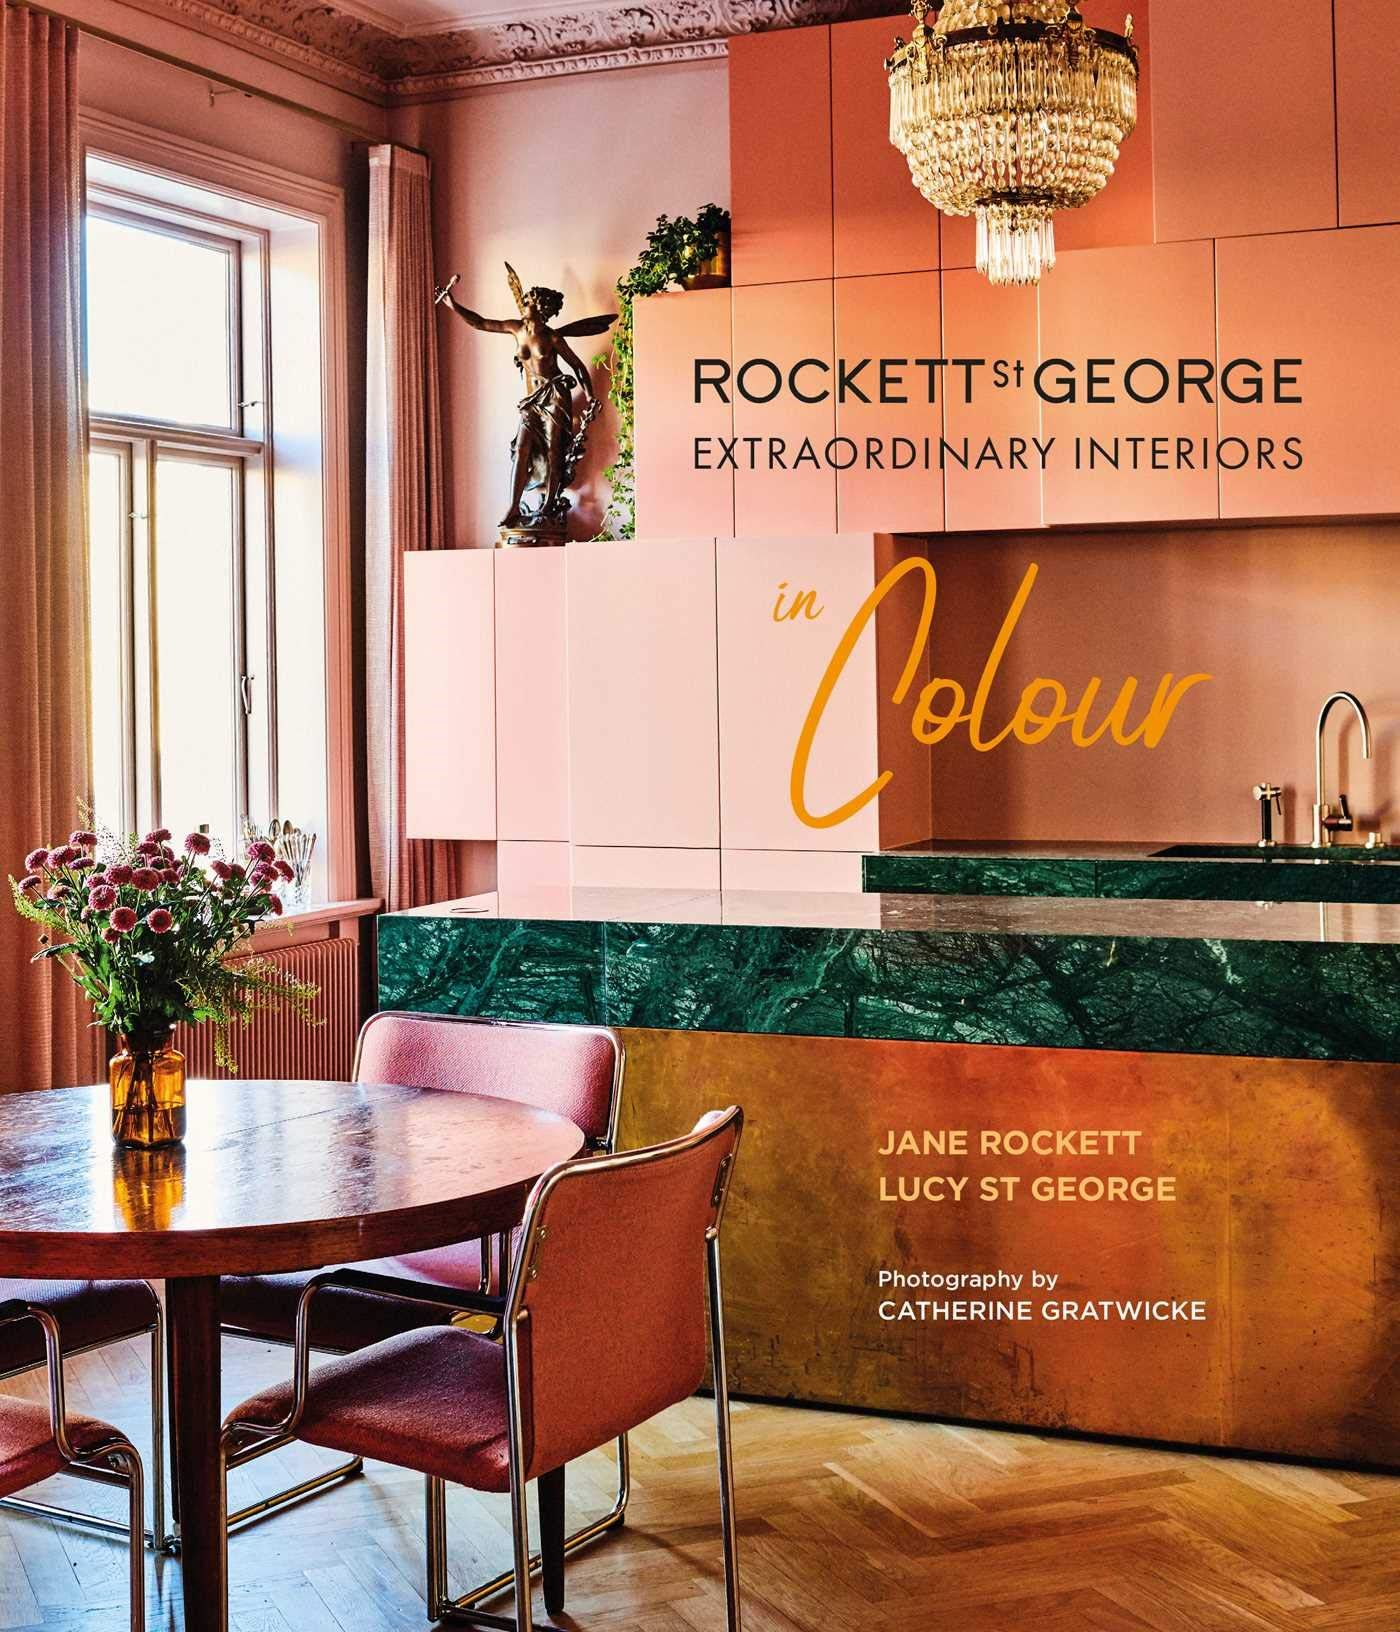 Rockett St George Extraordinary Interiors in Colour Book